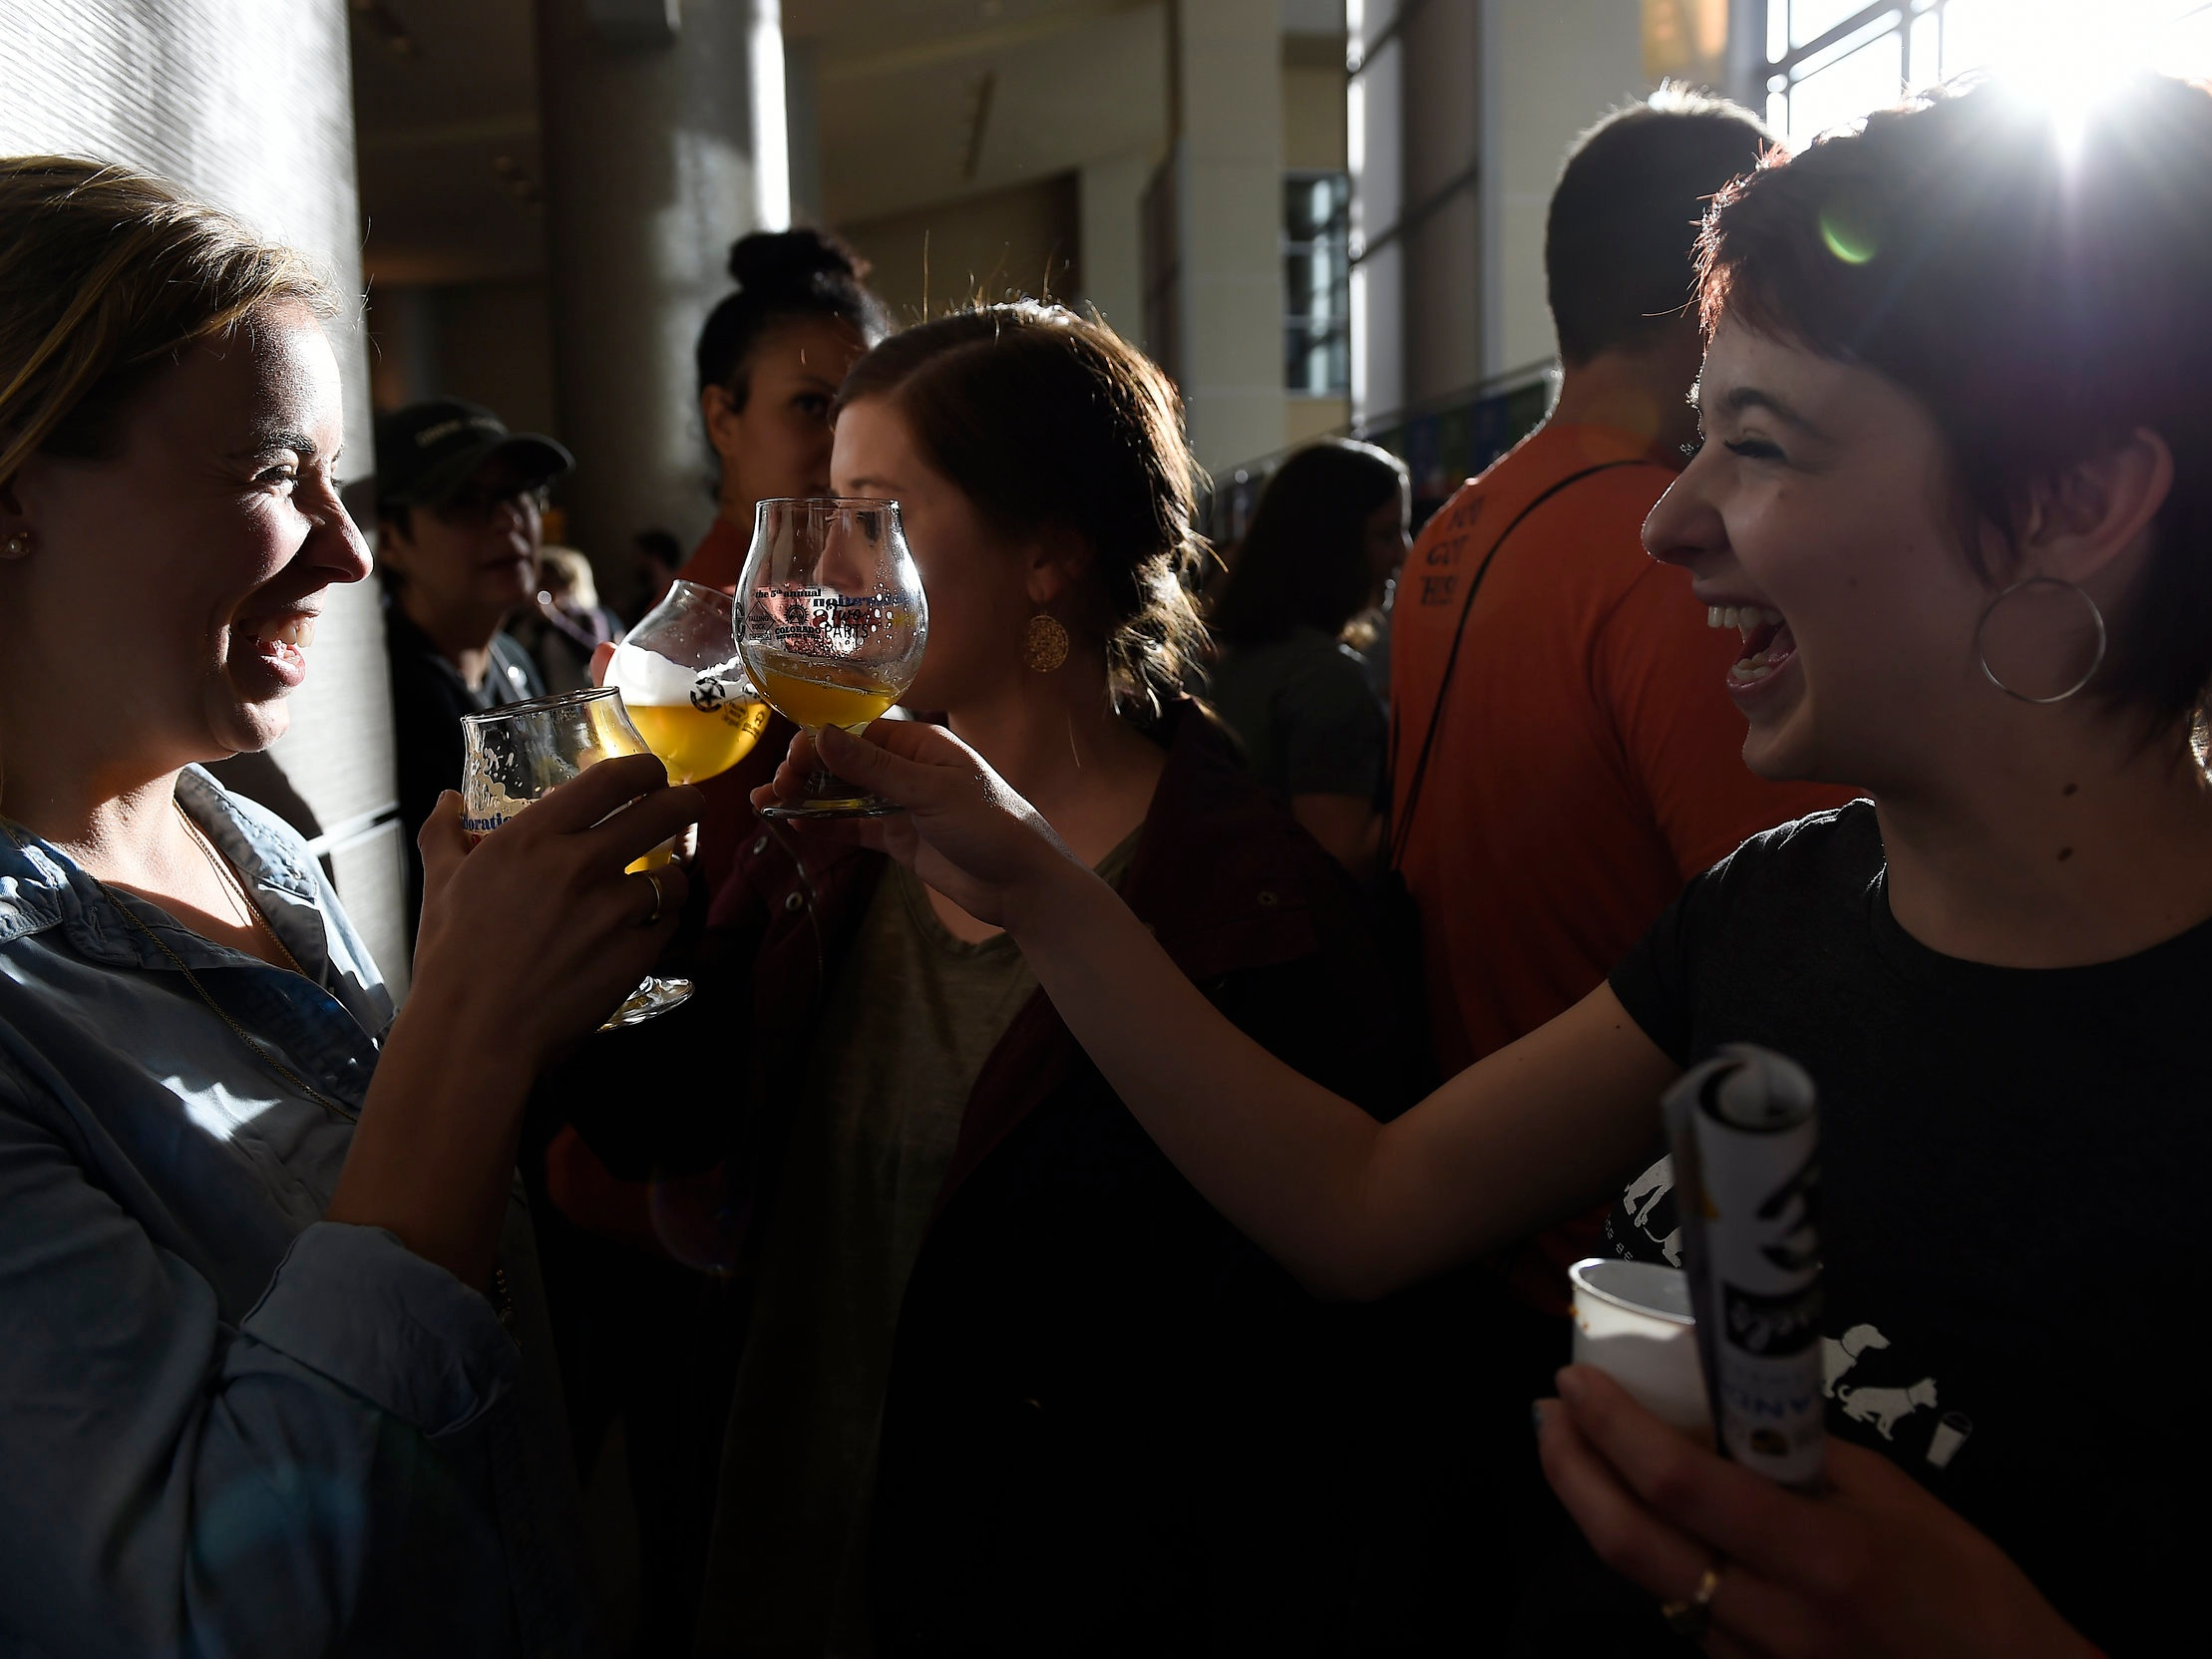 01_Collaboration-Beer-Fest-2018.jpg